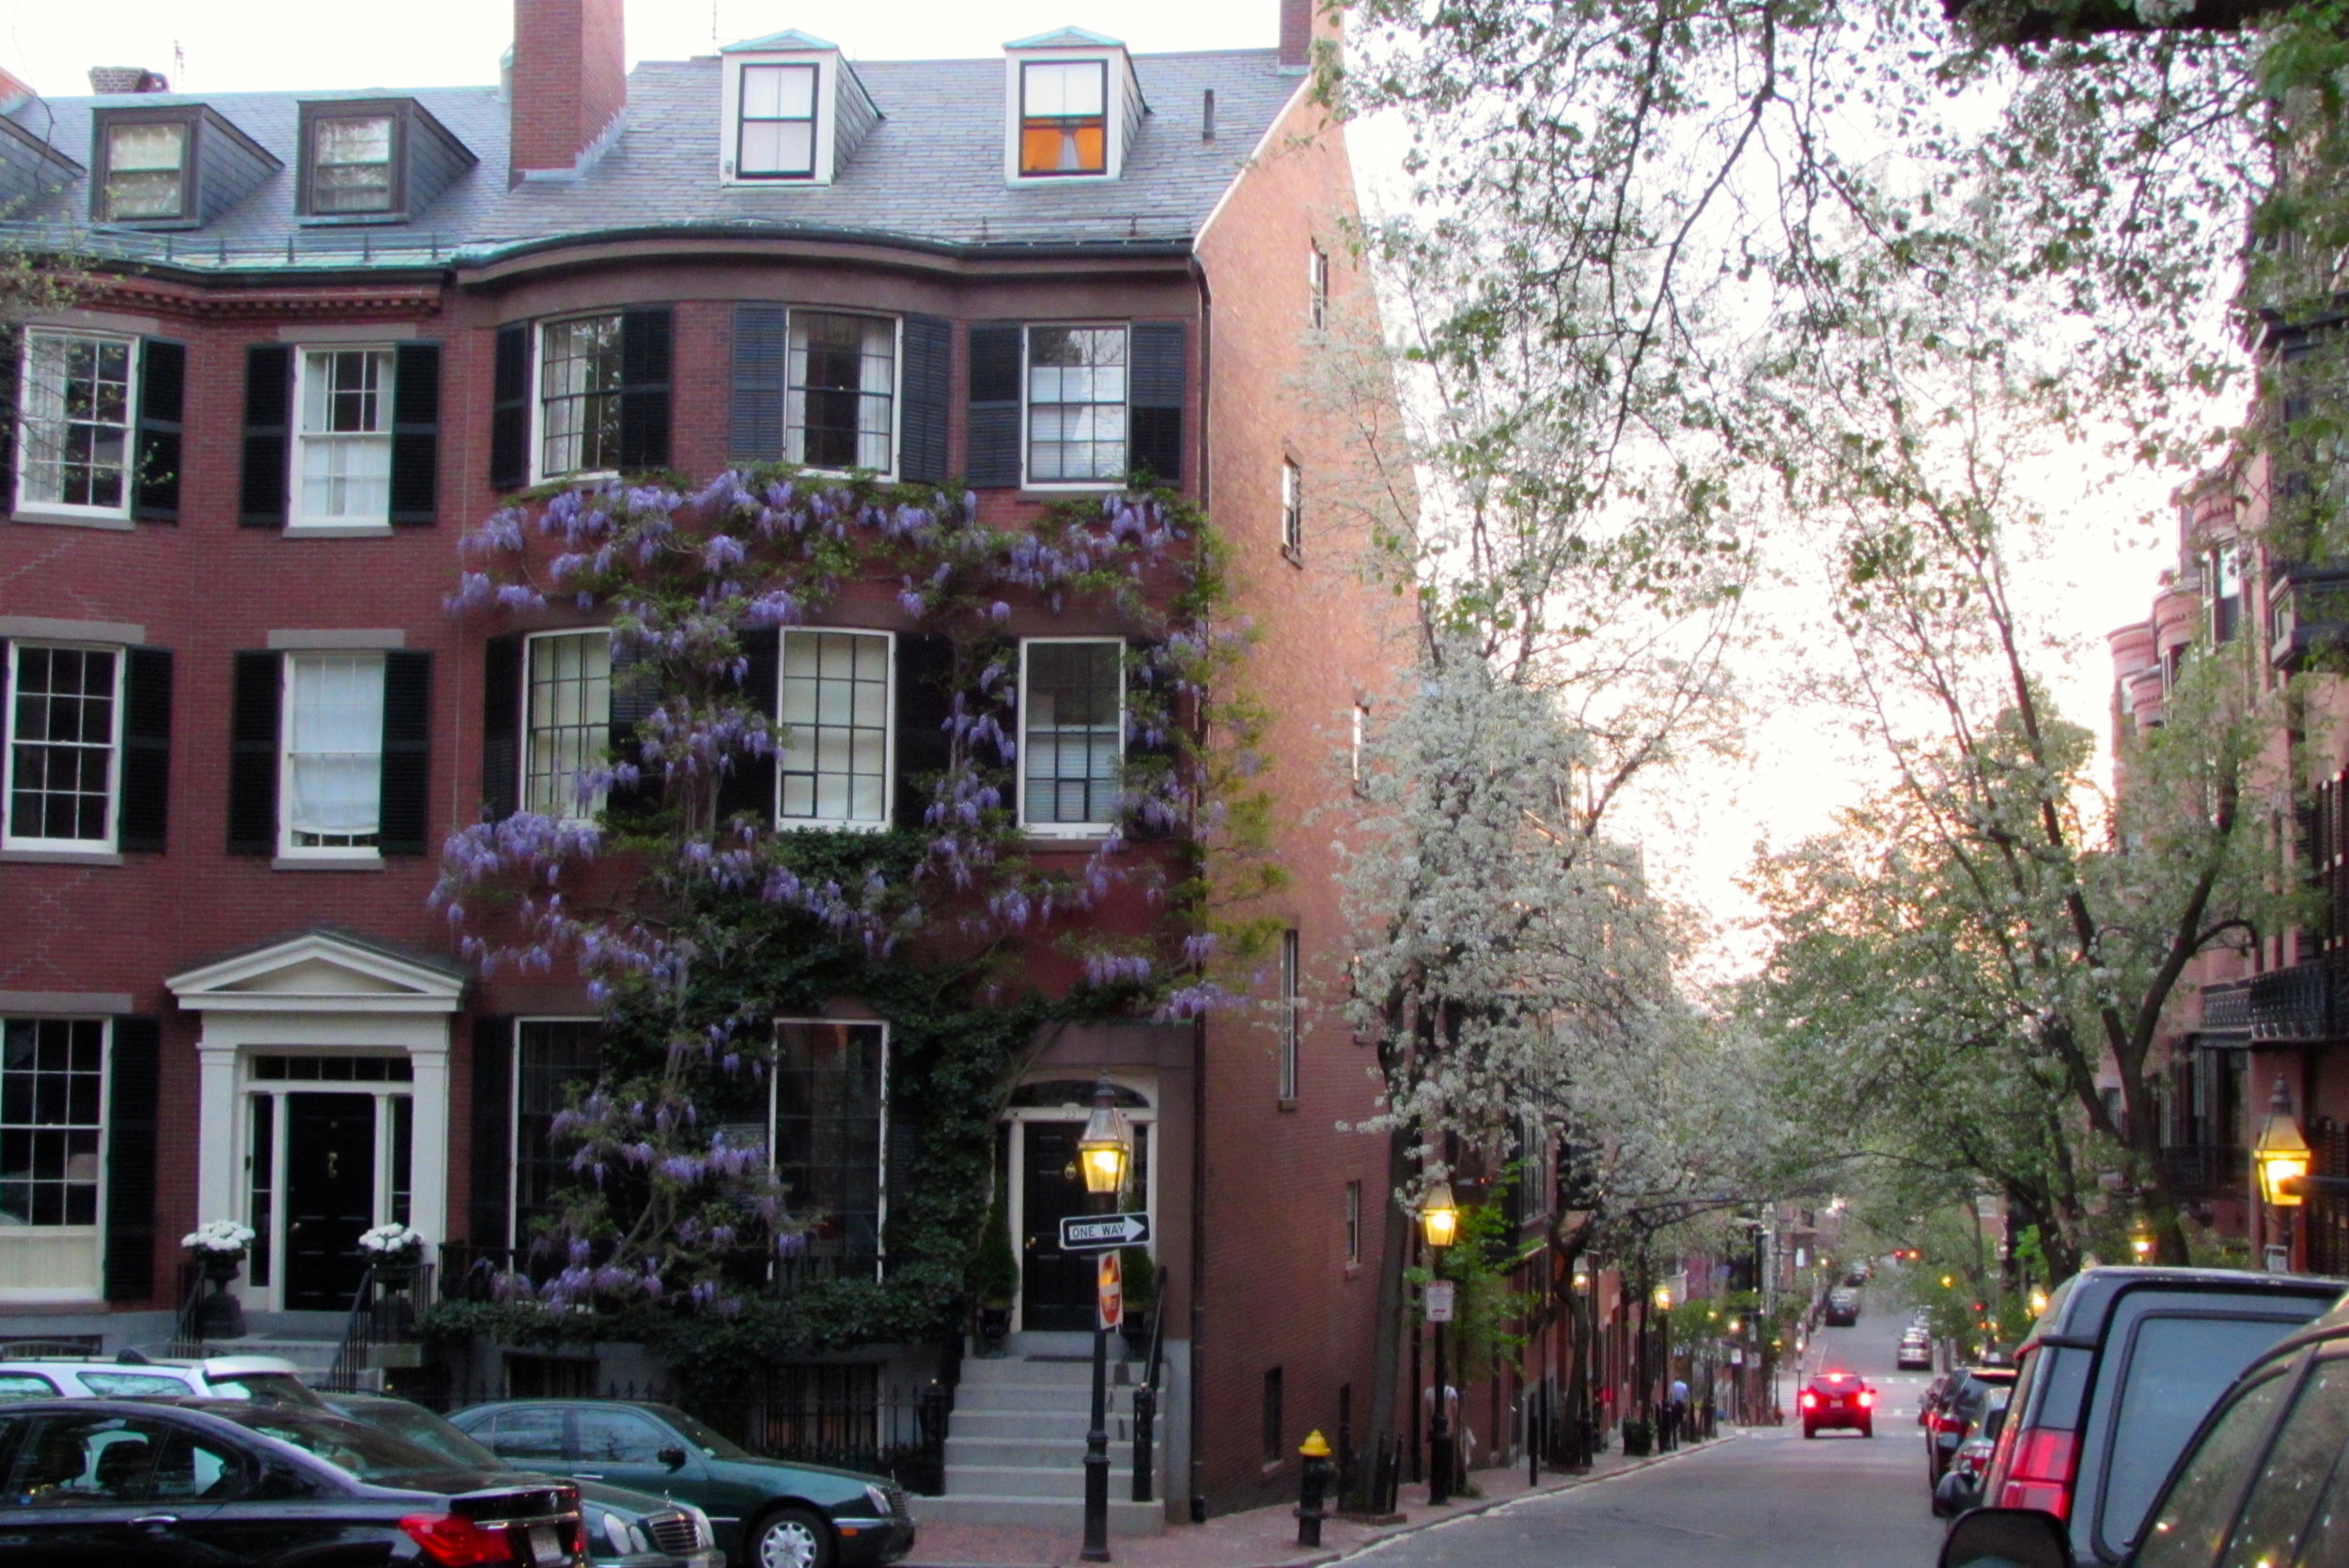 Boston: the Athens of America - A Walking Tour of Beacon Hill